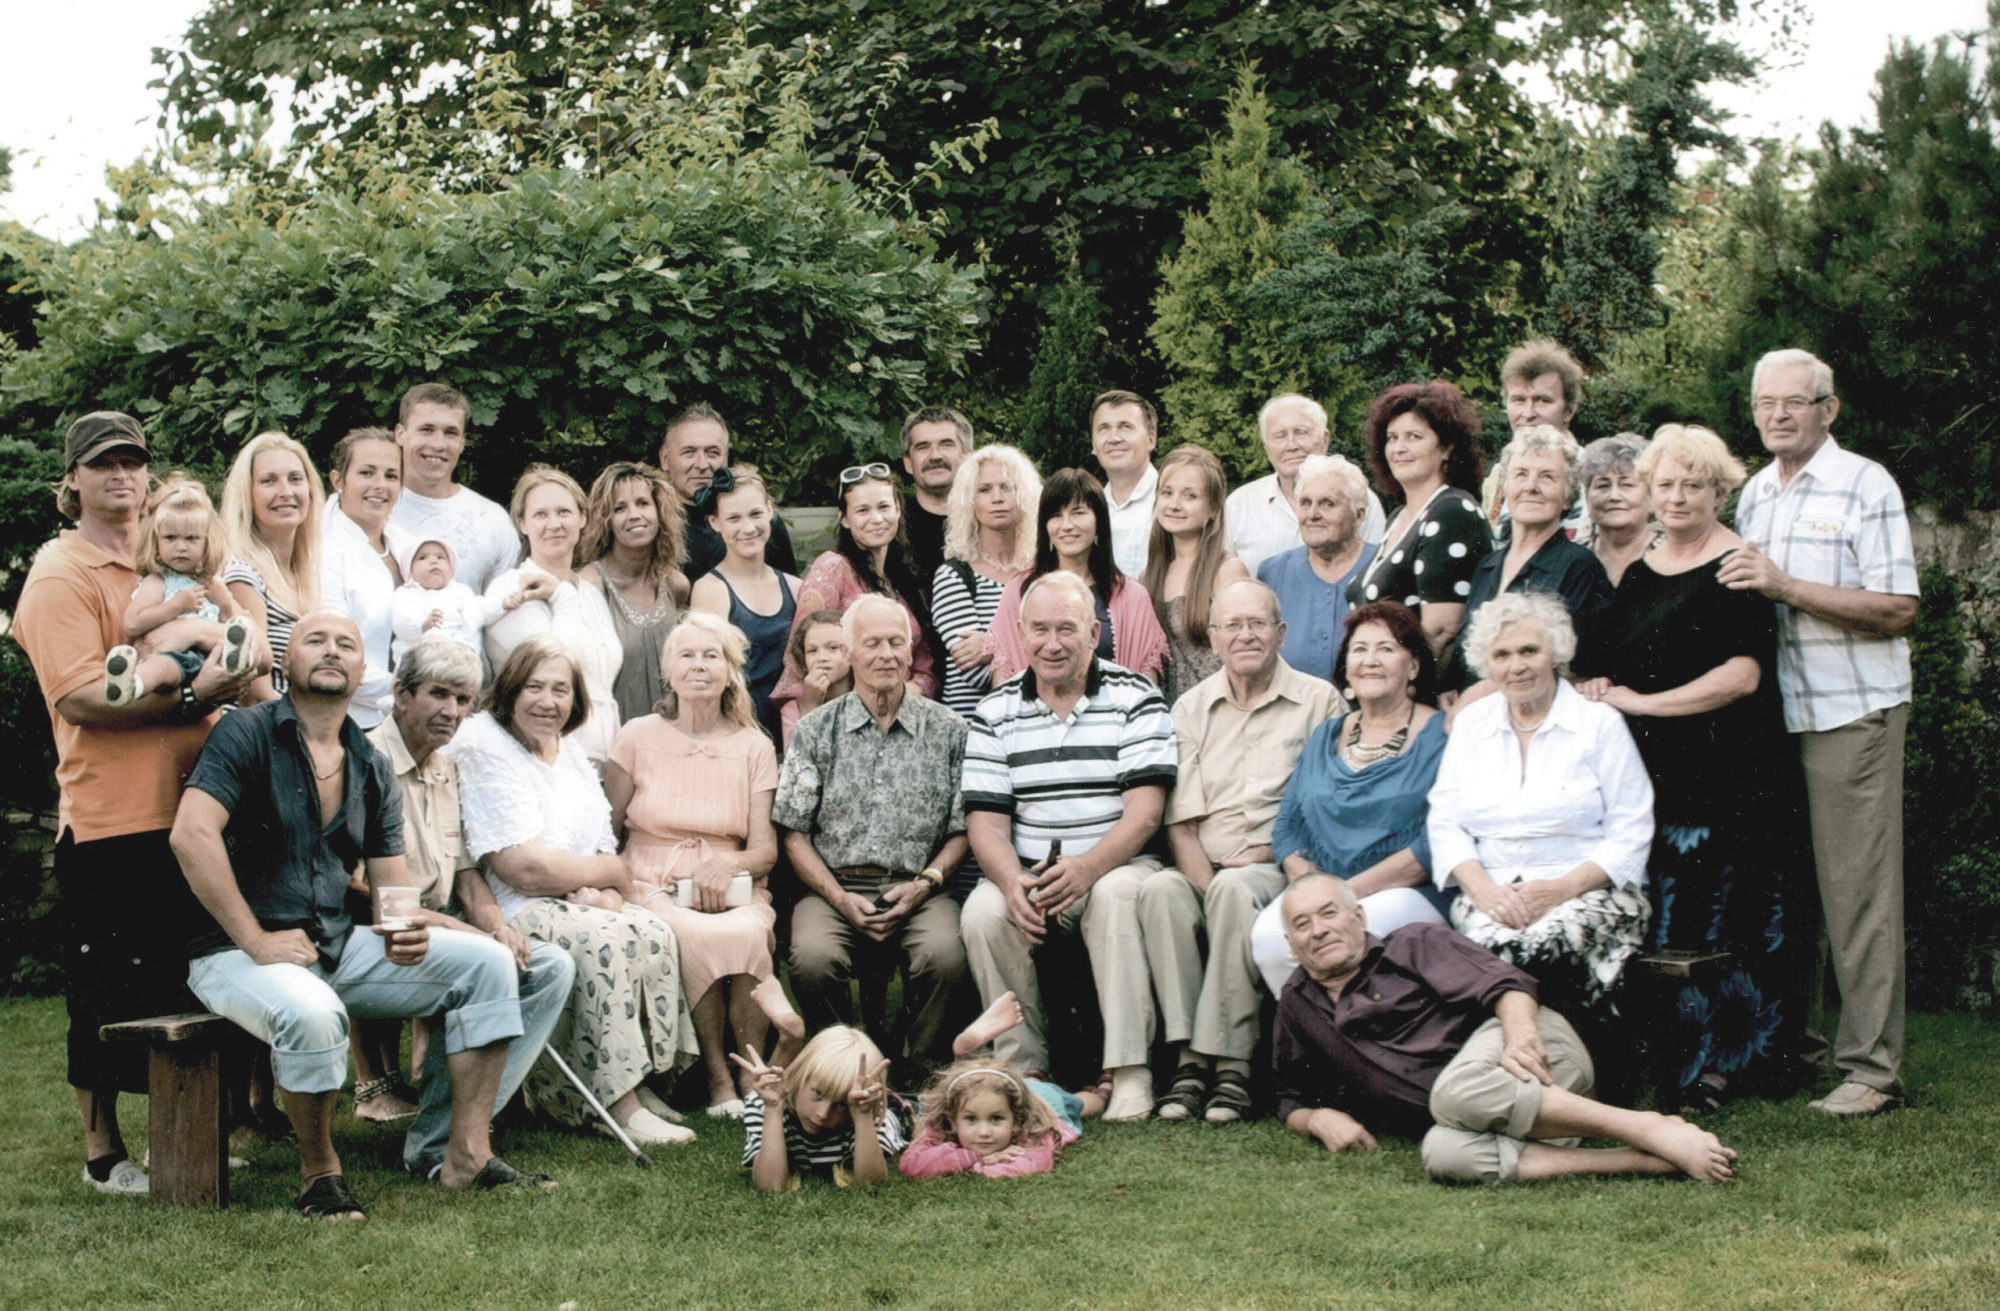 The Alberti family in 2015 at a fam- ily reunion on the property. Jānis, my grandfa- ther, is sitting in the middle (front row) wearing a striped shirt. He brings us together.